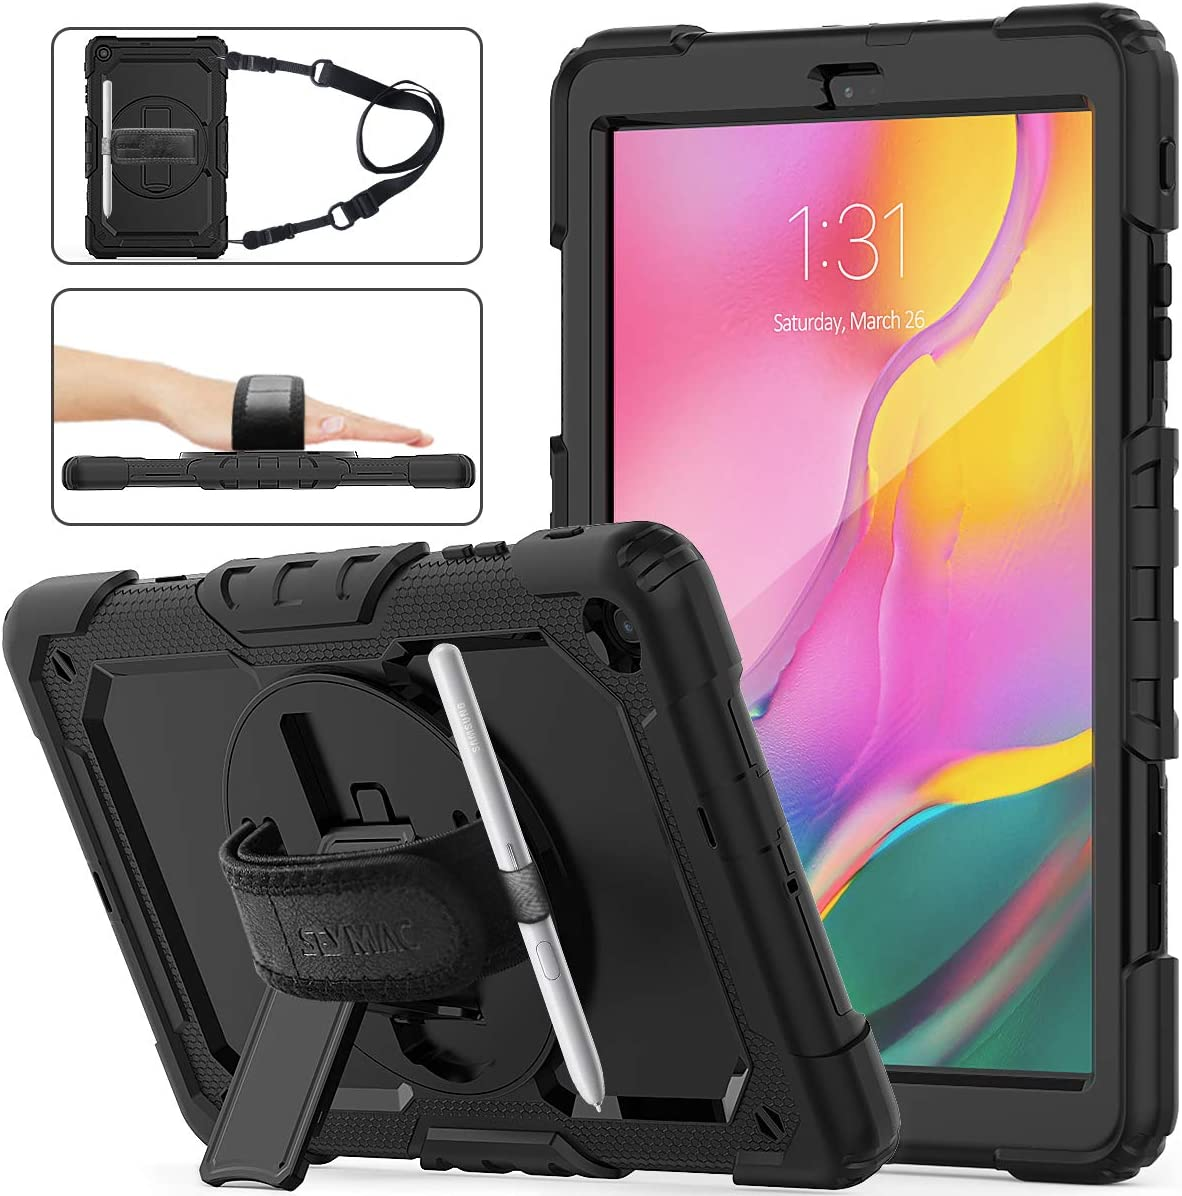 SEYMAC STOCK for Samsung Galaxy Tab A 10.1 T510/T515/T517 Case 2019, Three Layer Drop Protection Case with [360 Rotating Stand] Hand Strap [Screen Protector] for Samsung Galaxy Tab A 10.1 (Black)